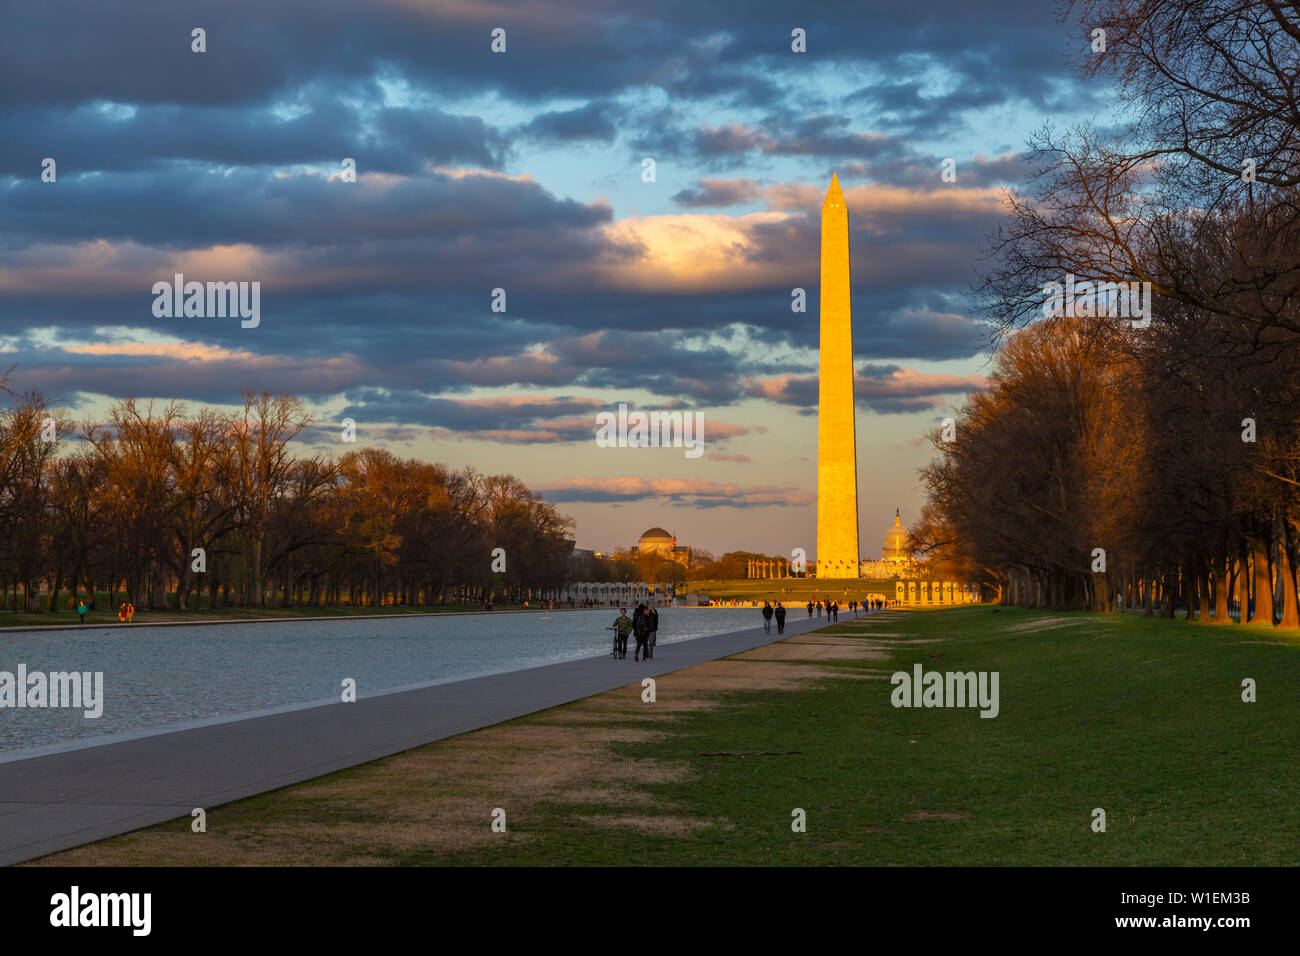 View of Lincoln Memorial Reflecting Pool and Washington Monument at sunset, Washington D.C., United States of America, North America Stock Photo